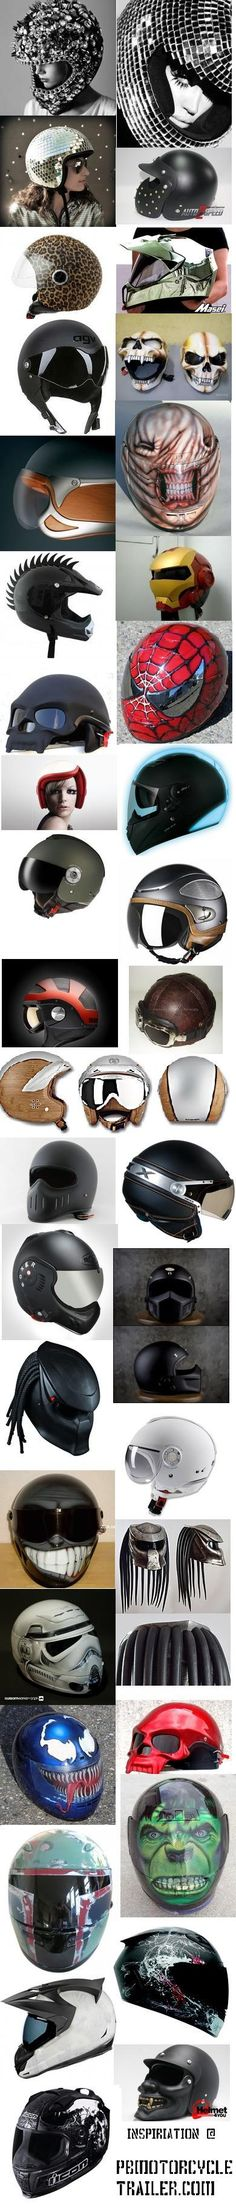 bitchin helmet collection.